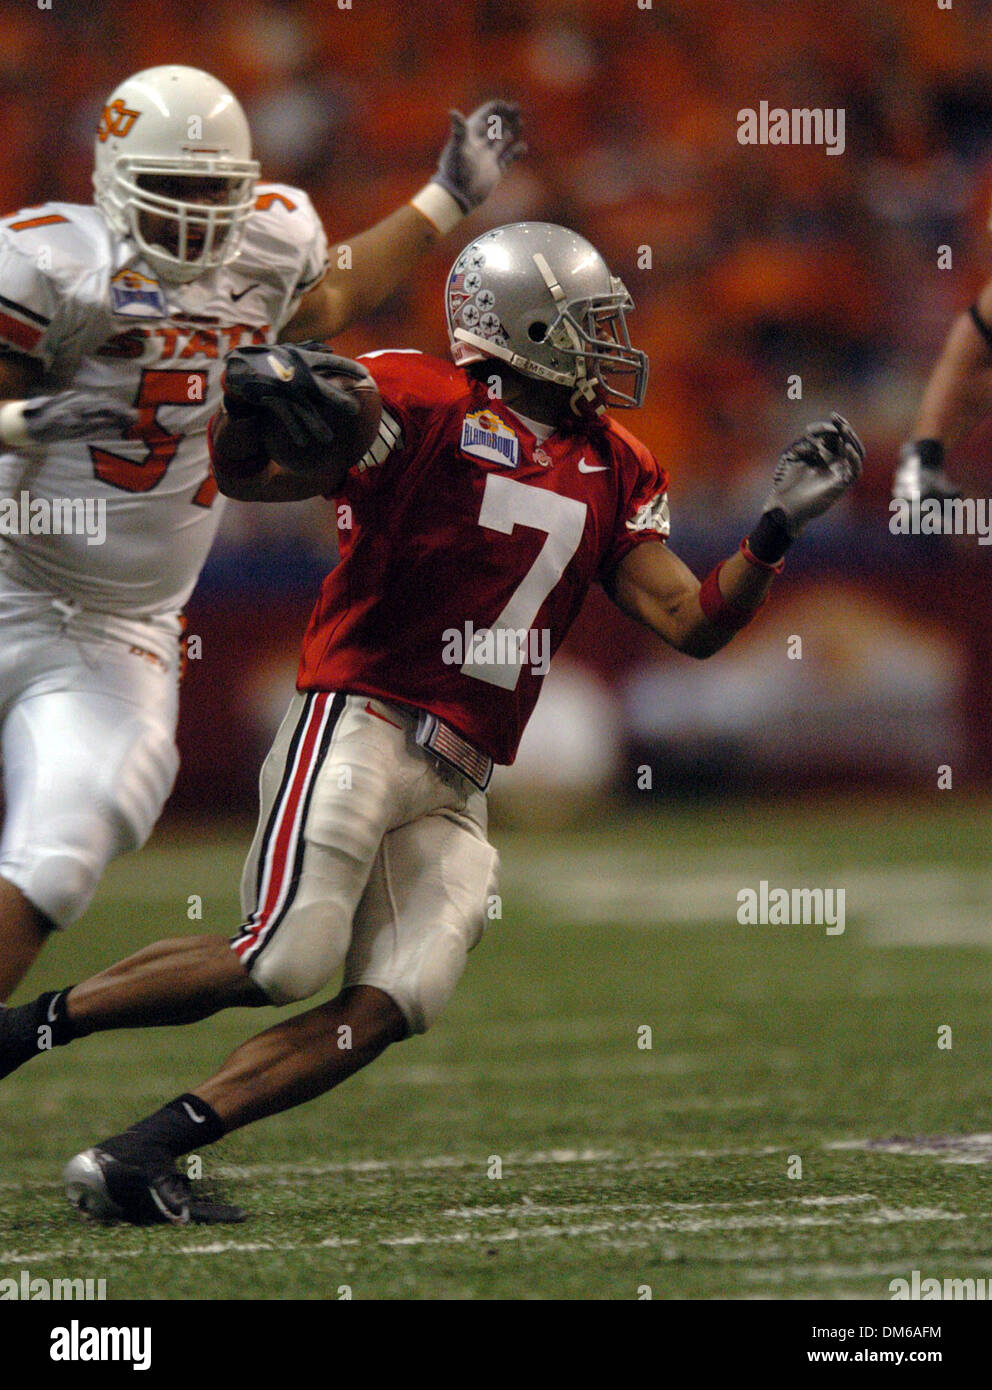 Dec 29, 2004; San Antonio, TX, USA; NCAA Football - Ohio State's Ted Ginn Jr. (7) runs in the open field pursued by Oklahoma State's Nathan Peterson (57) in the 3rd quarter during the 2004 MasterCard Alamo Bowl in the Alamo Dome in San Antonio. - Stock Image